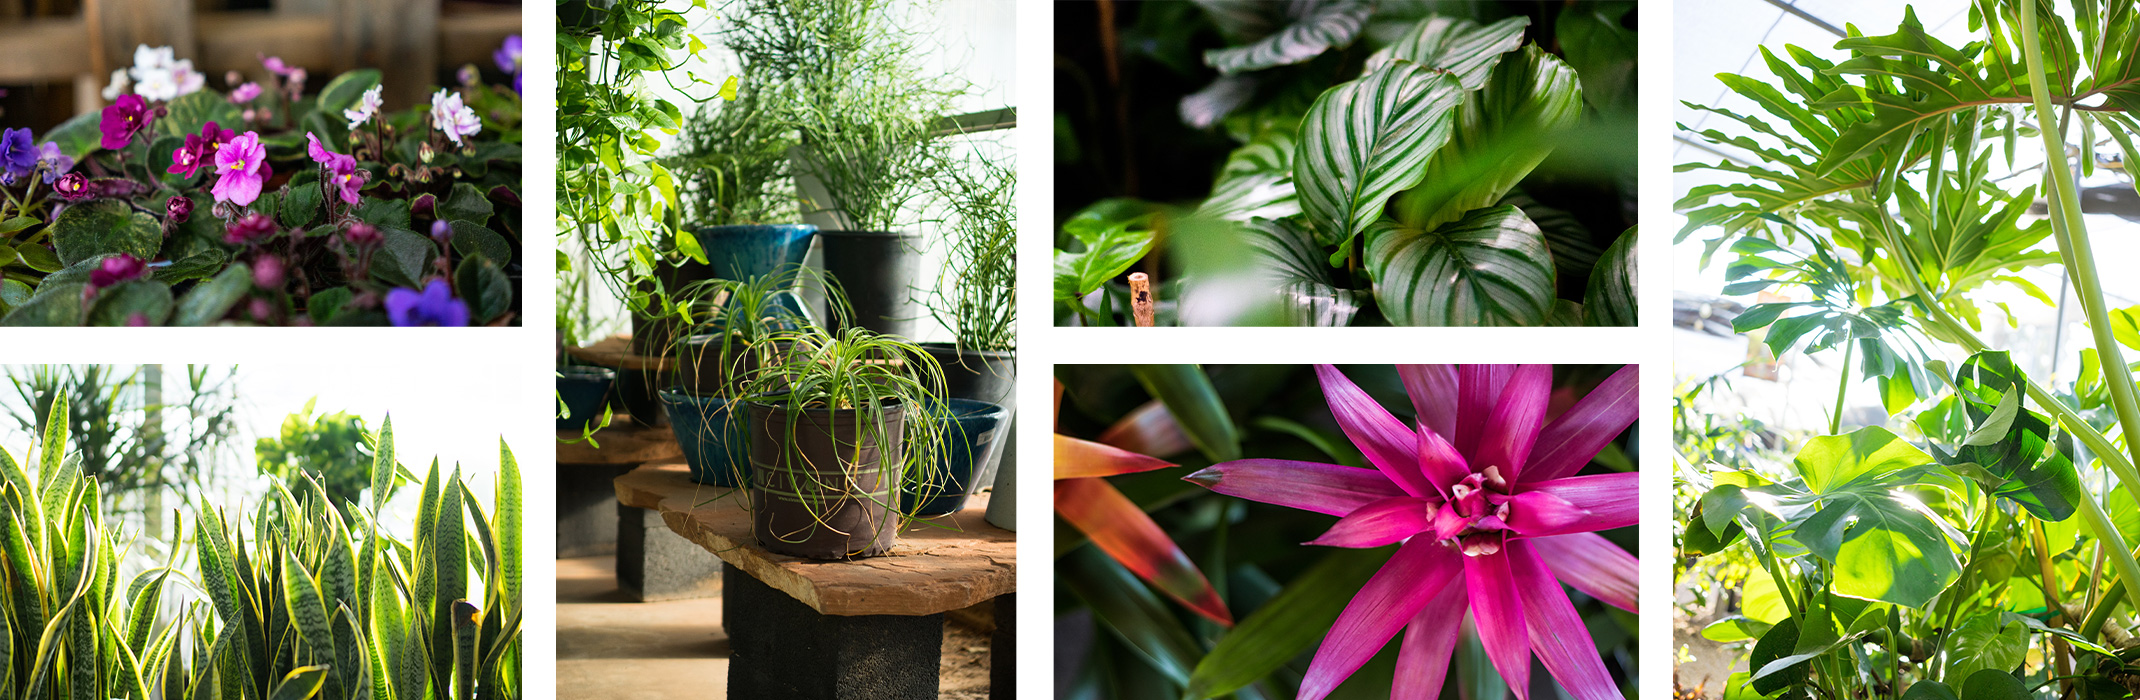 A collage of 6 images of houseplants: African Violets, Snake Plants, Spider Plants & Pothos, Calathea, Bromeliads and Monsteras